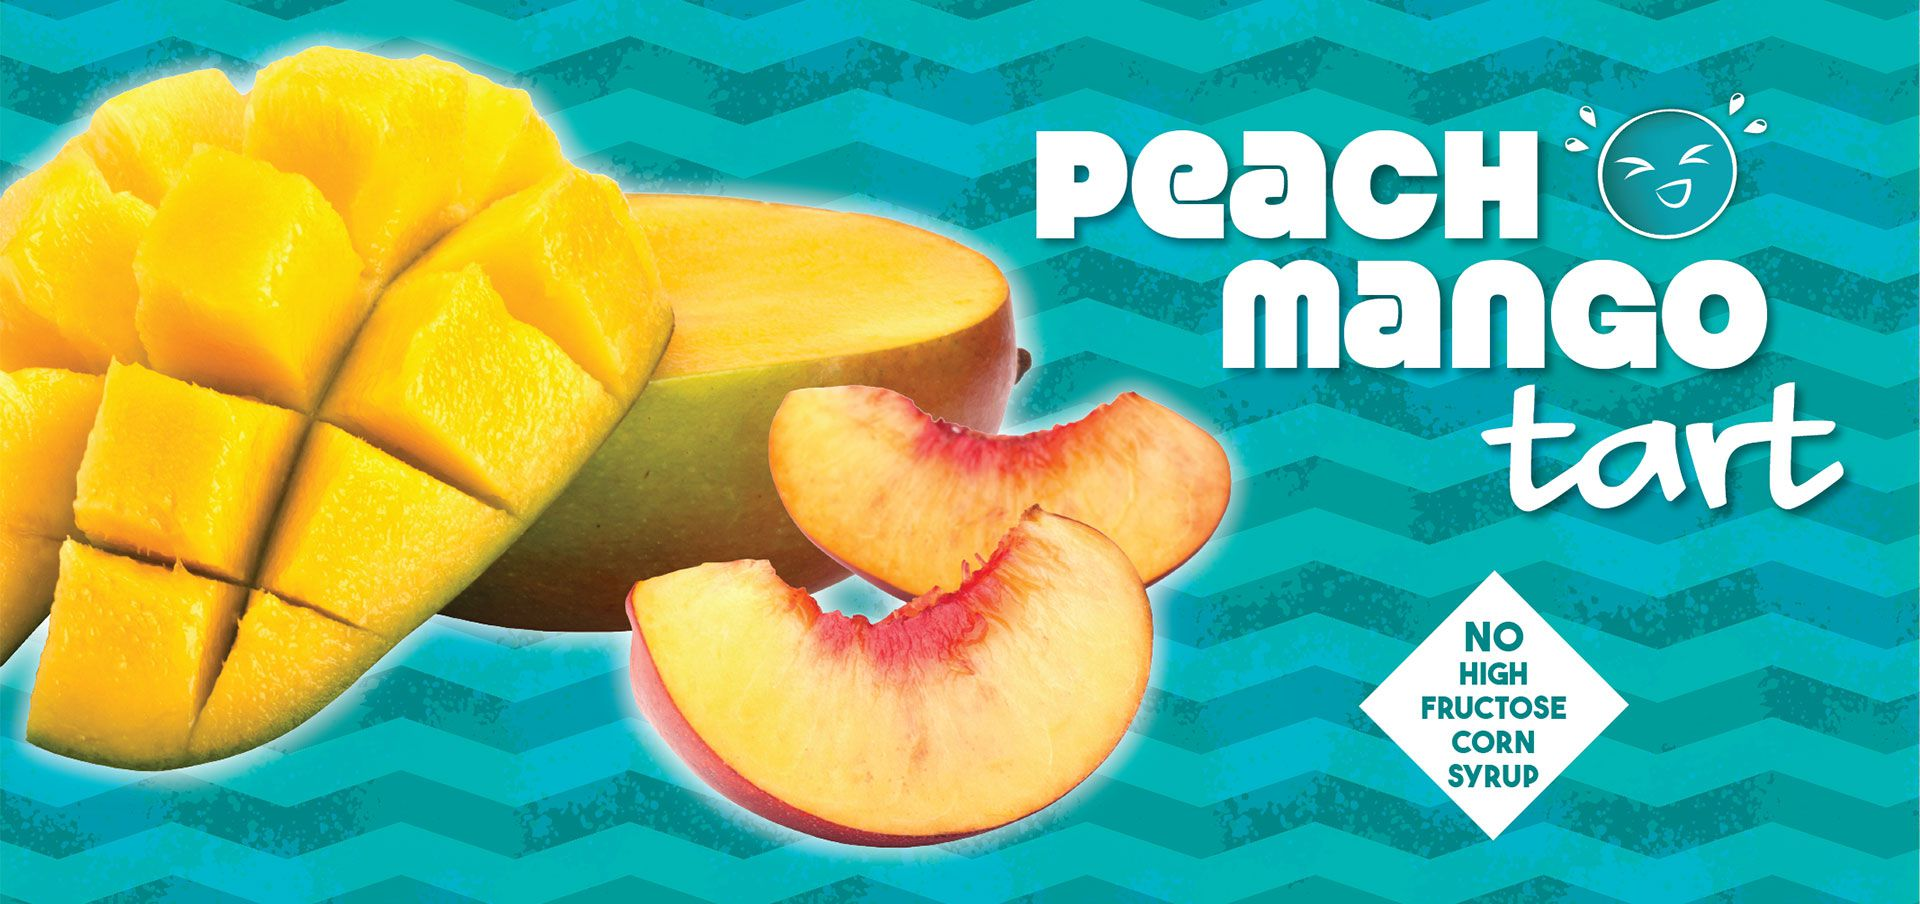 peach mango tart label image